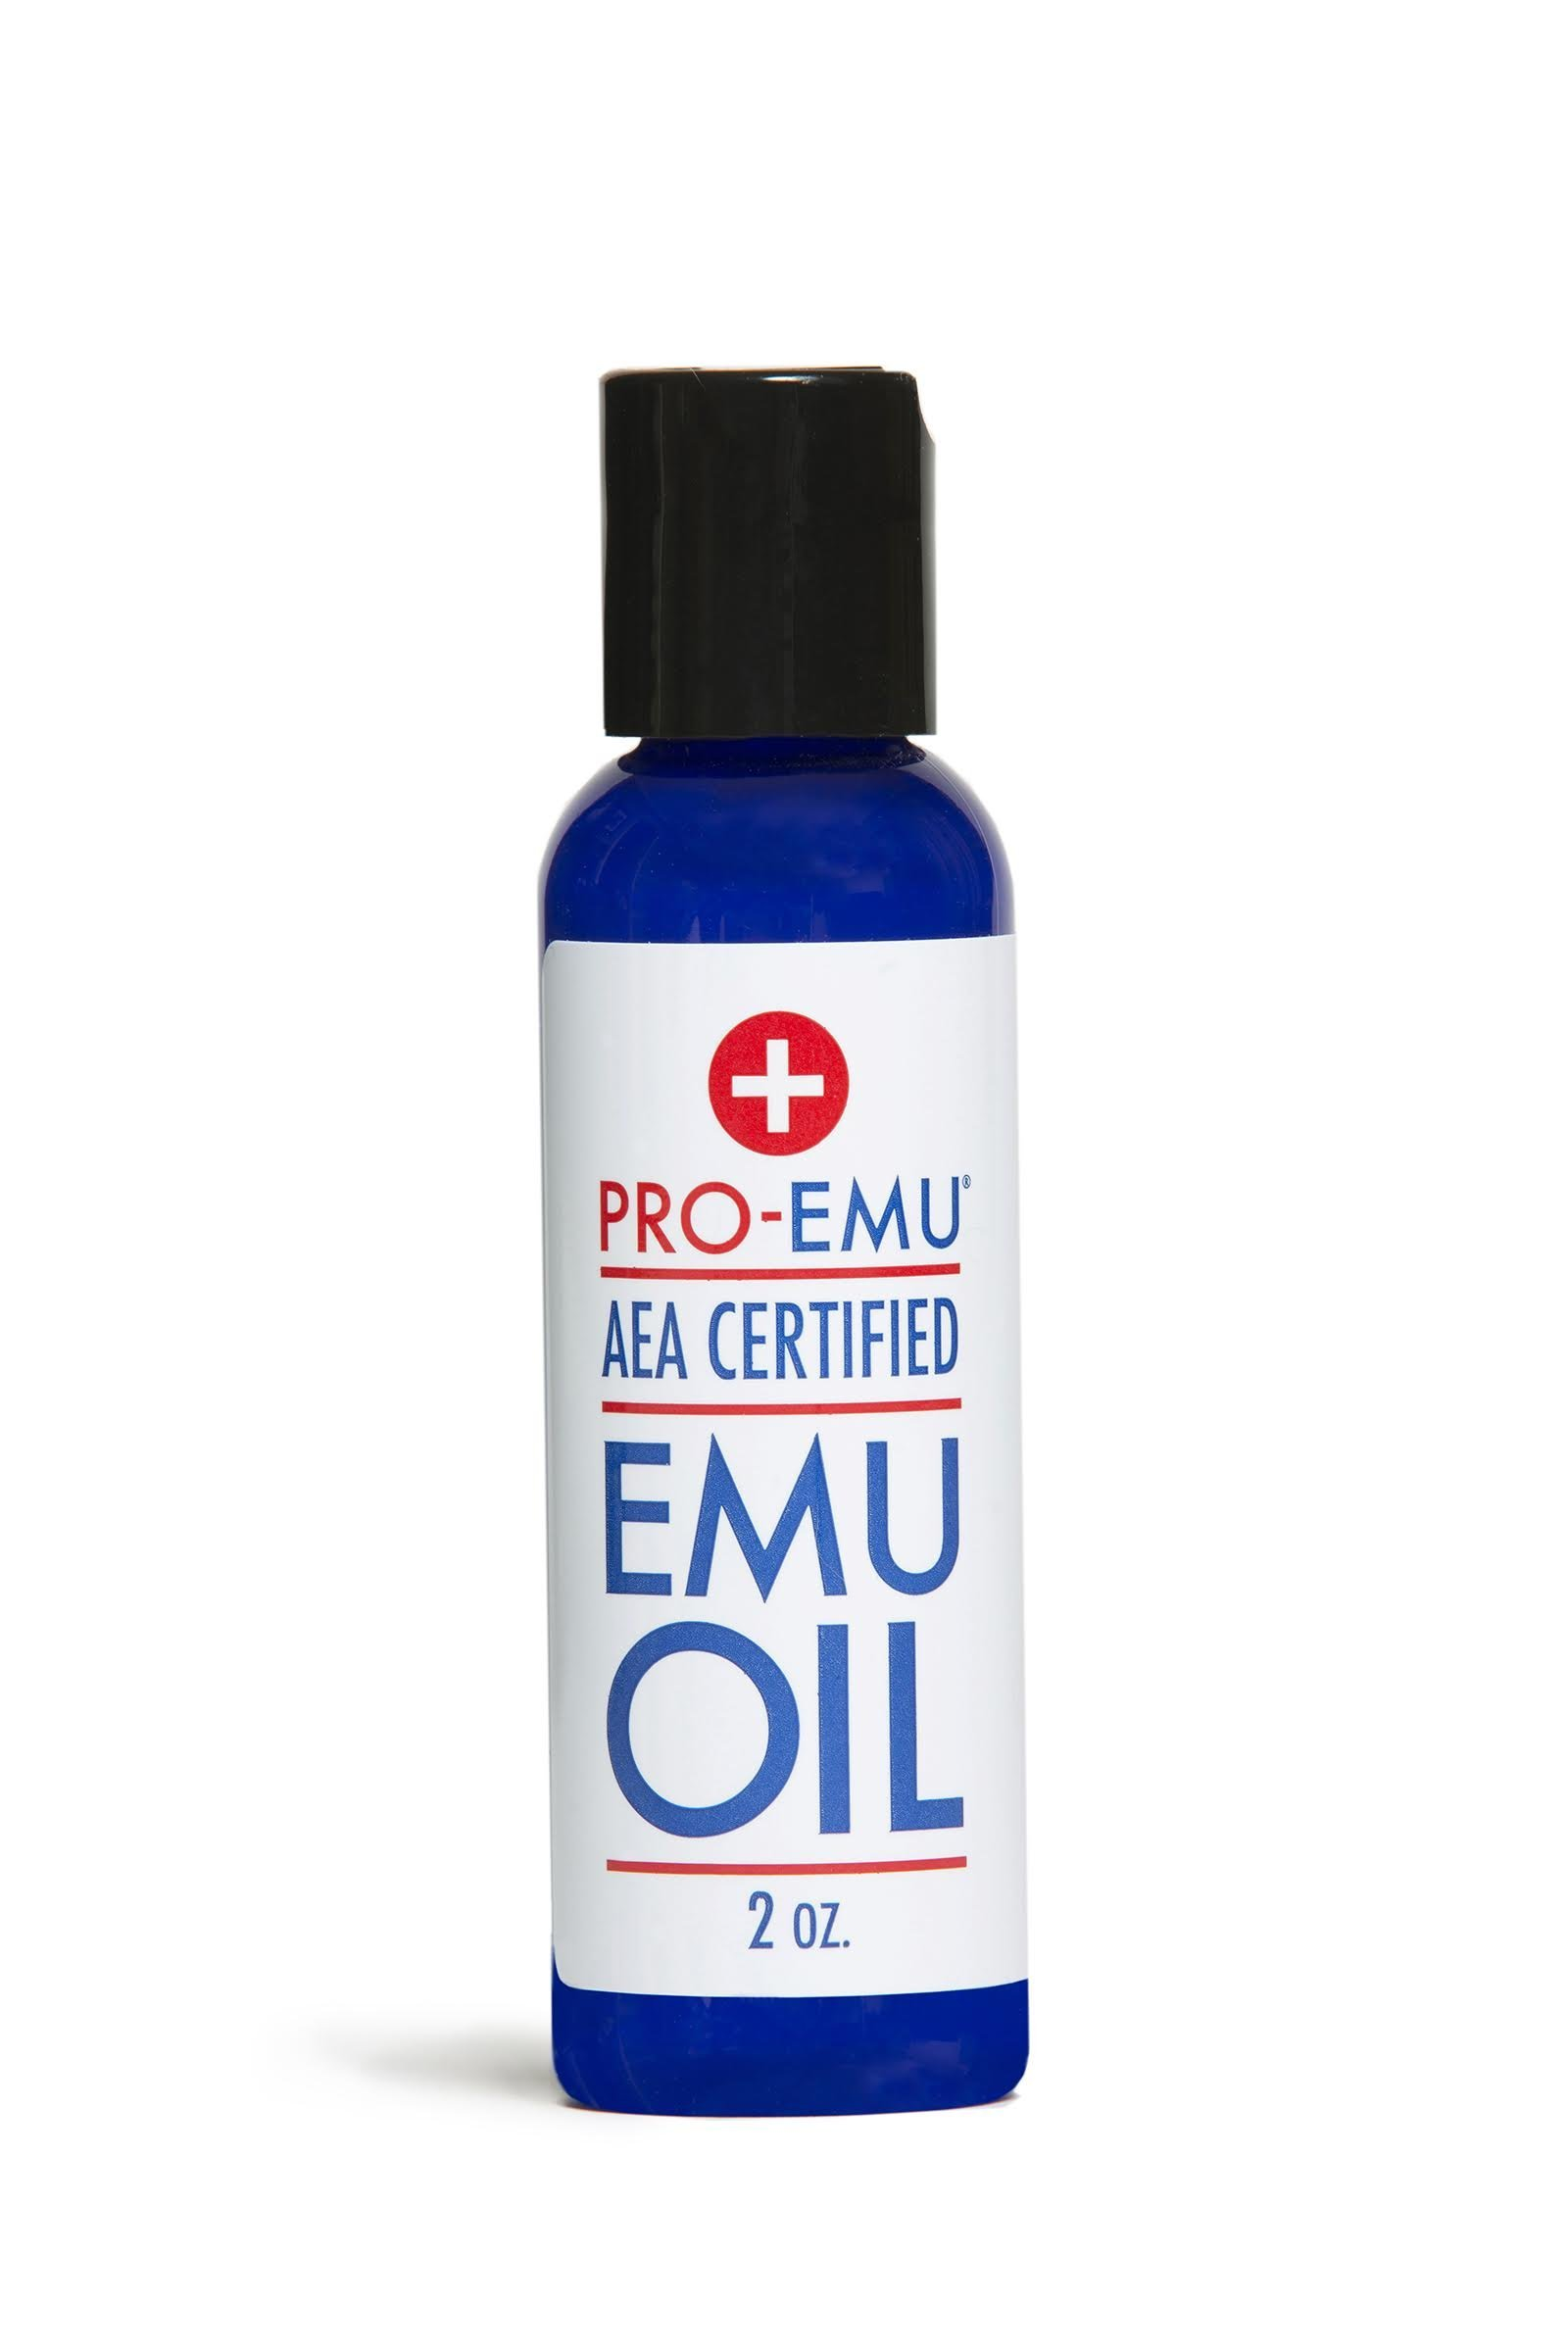 PRO EMU OIL (2 oz) All Natural Emu Oil - AEA Certified - Made In USA - Best All Natural Oil for Face, Skin, Hair and Nails.